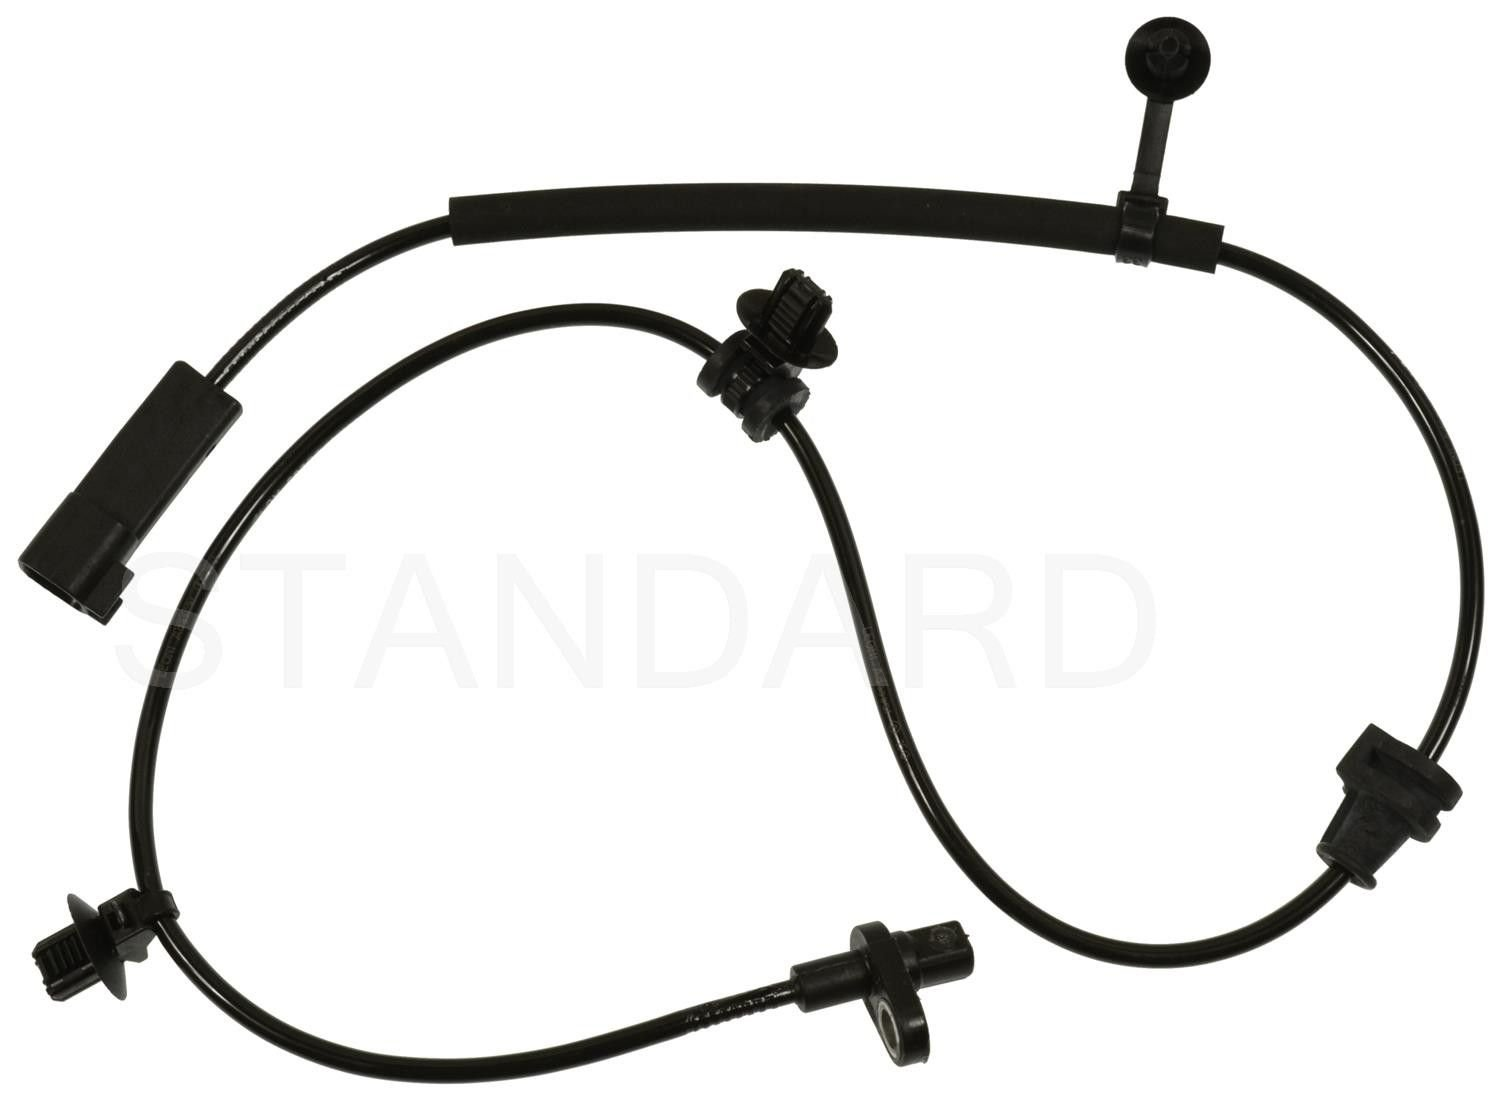 ford mustang abs wheel speed sensor replacement dorman motorcraft 2015 Ford Mustang Seats 2015 ford mustang abs wheel speed sensor front left 8 cyl 5 2l standard ignition als3057